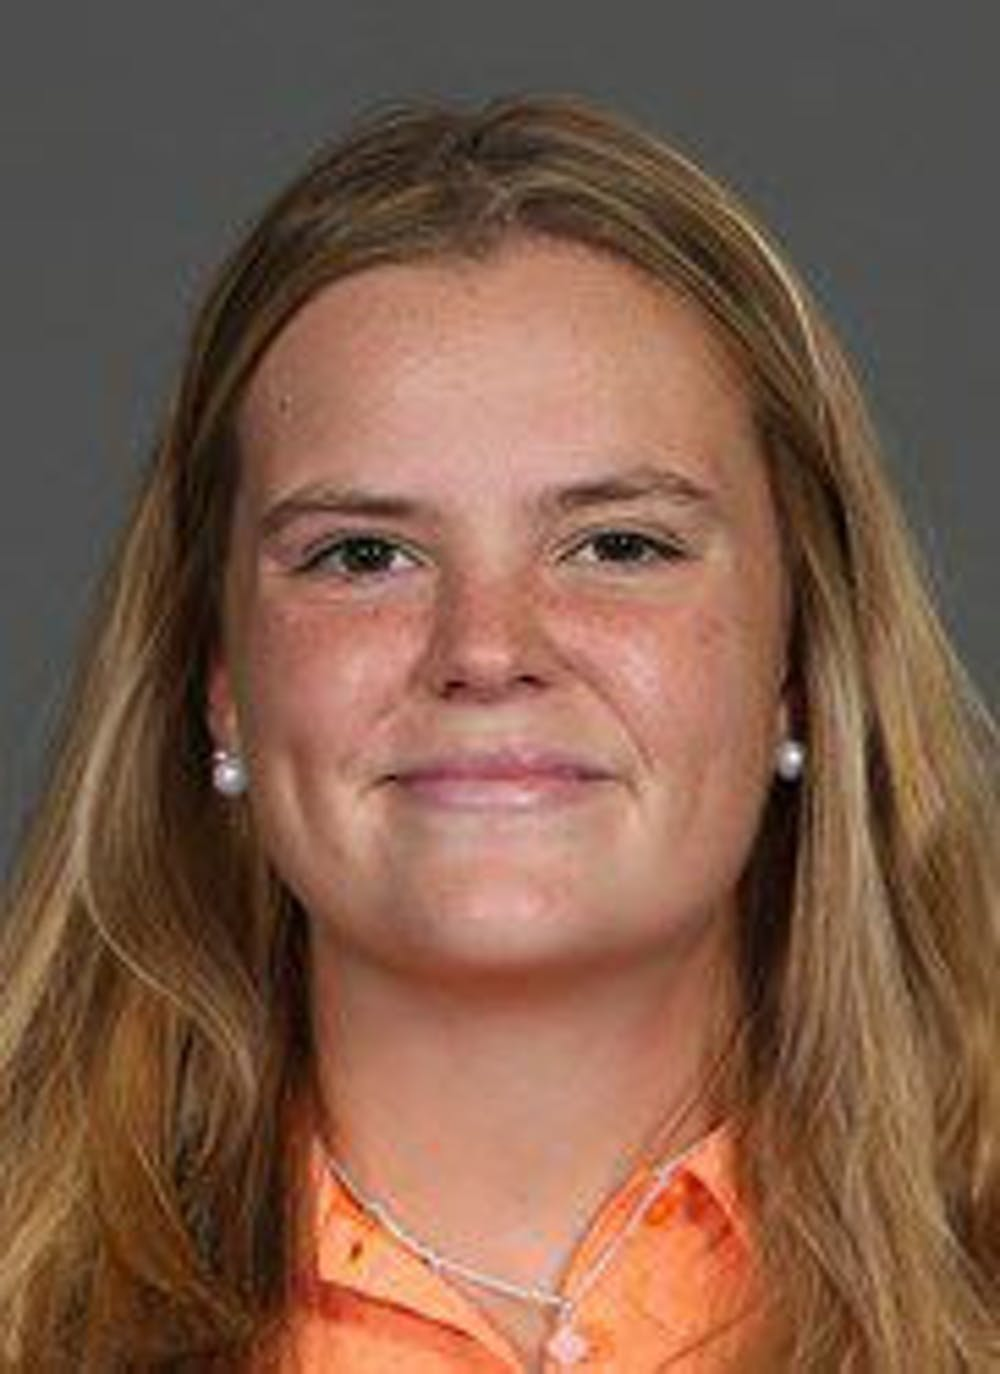 <p>Sophomore Marta Perez led the Florida women's golf team in stroke play at the SEC Tournament on Friday, shooting a 1 under to drop her final score over three rounds to even par.</p>